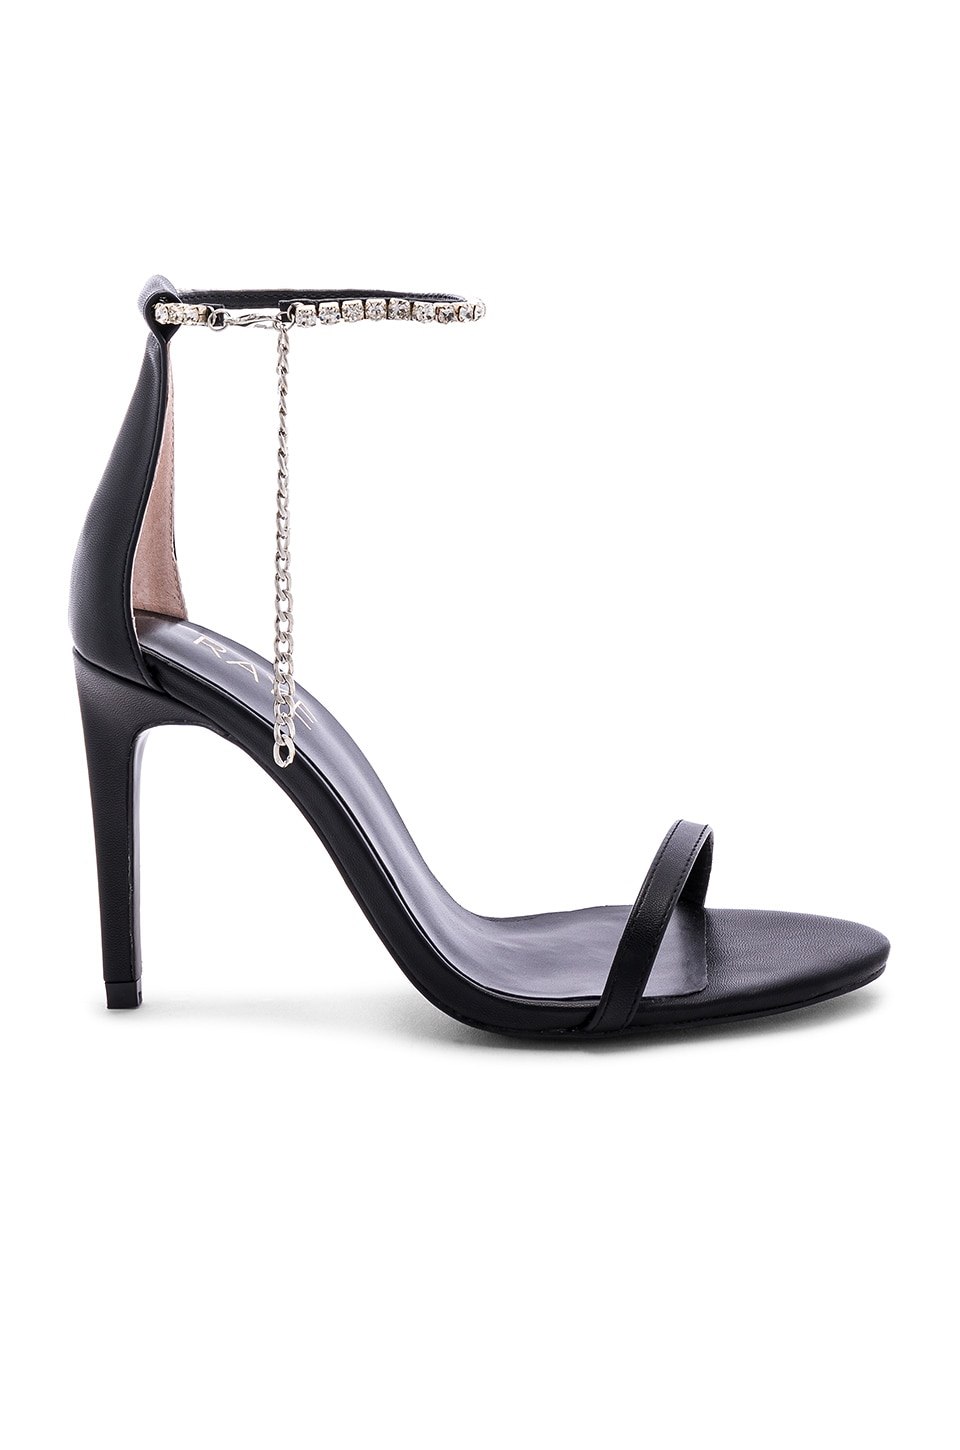 RAYE Nissa Heel in Black